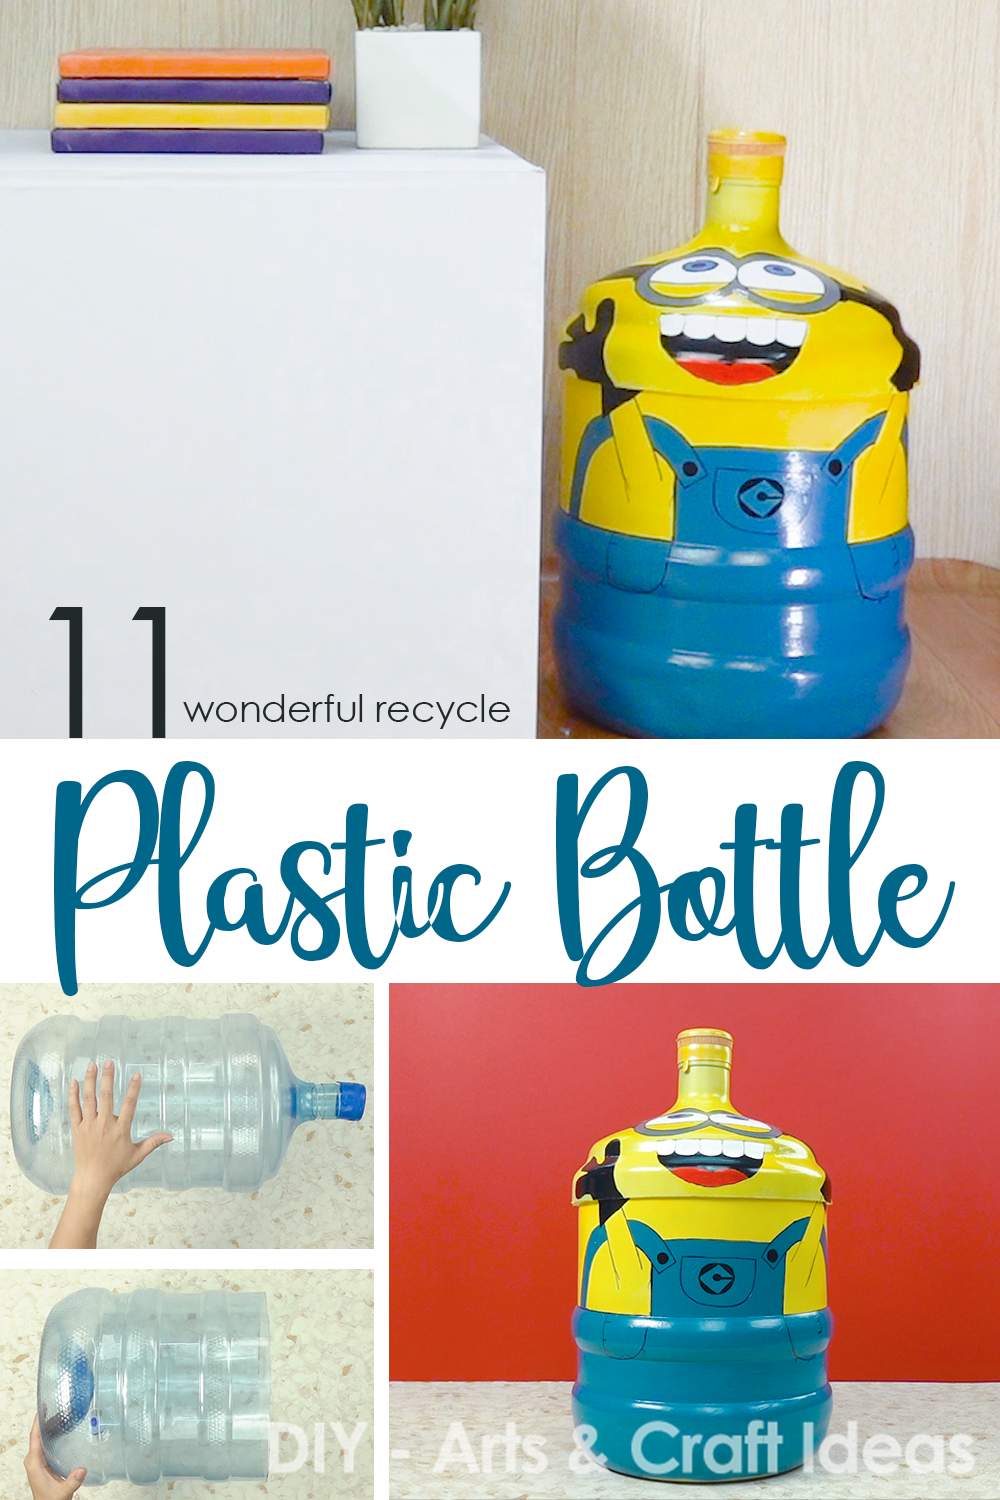 11 Wonderful Recycle Diy Crafts With Plastic Bottle Recycle Crafts Diy Diy Recycle Recycling